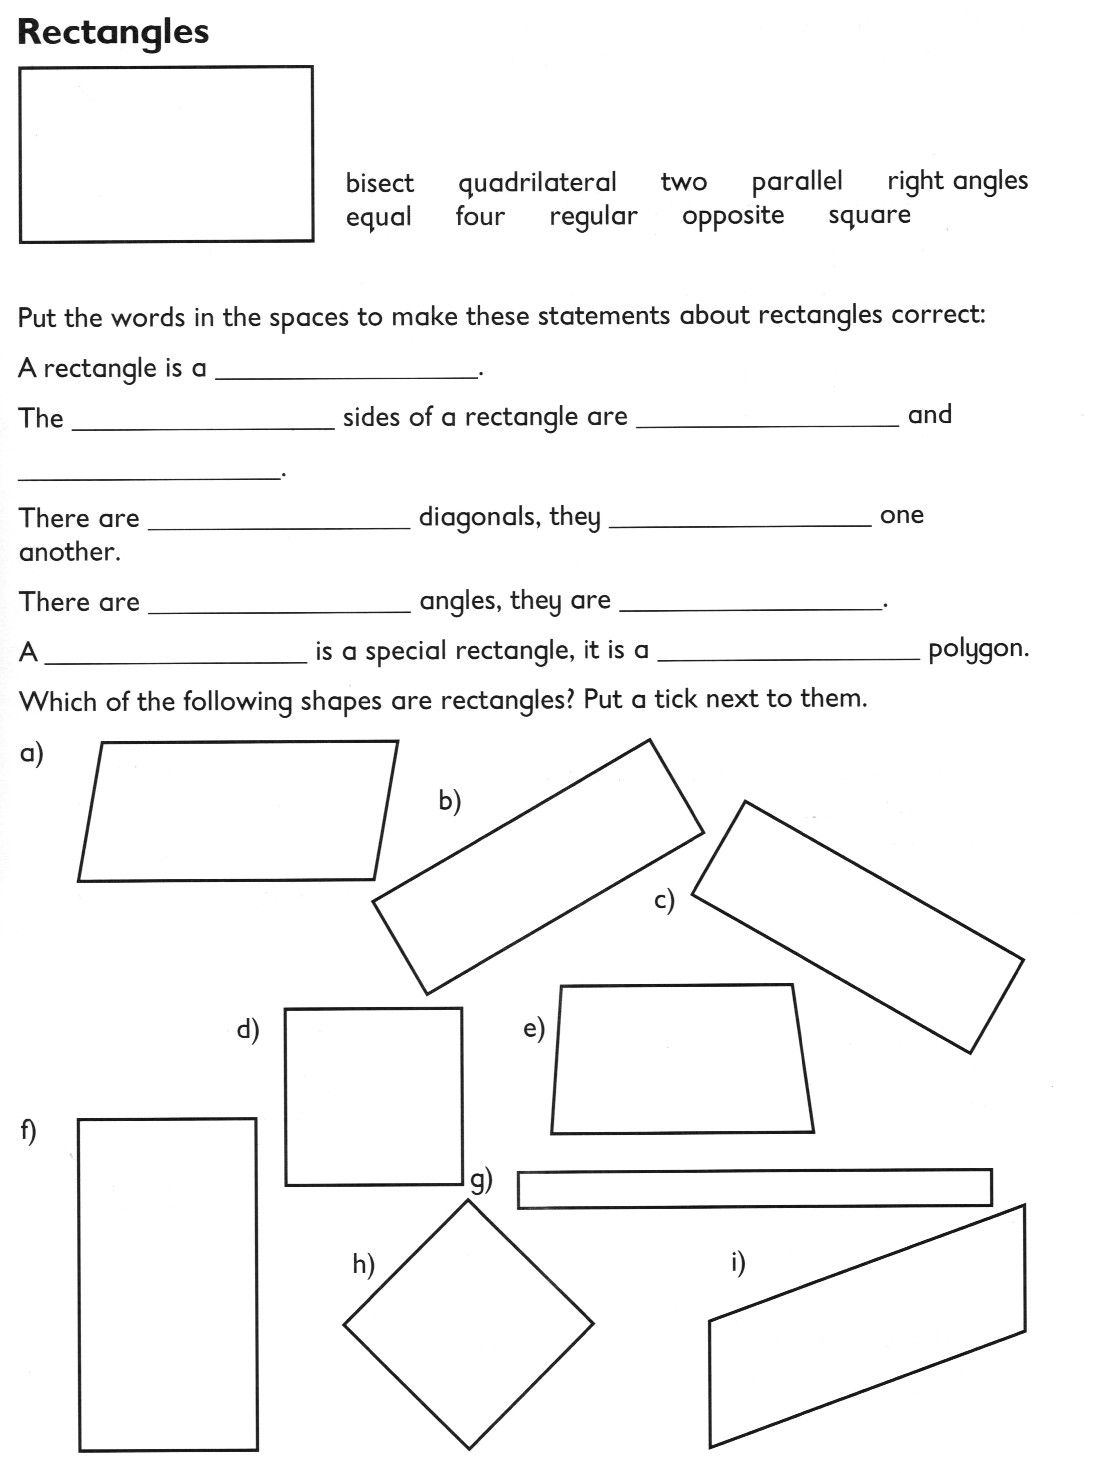 worksheet Quadrilateral Properties Worksheet compare and classify geometric shapes including quadrilaterals triangles based on their properties and